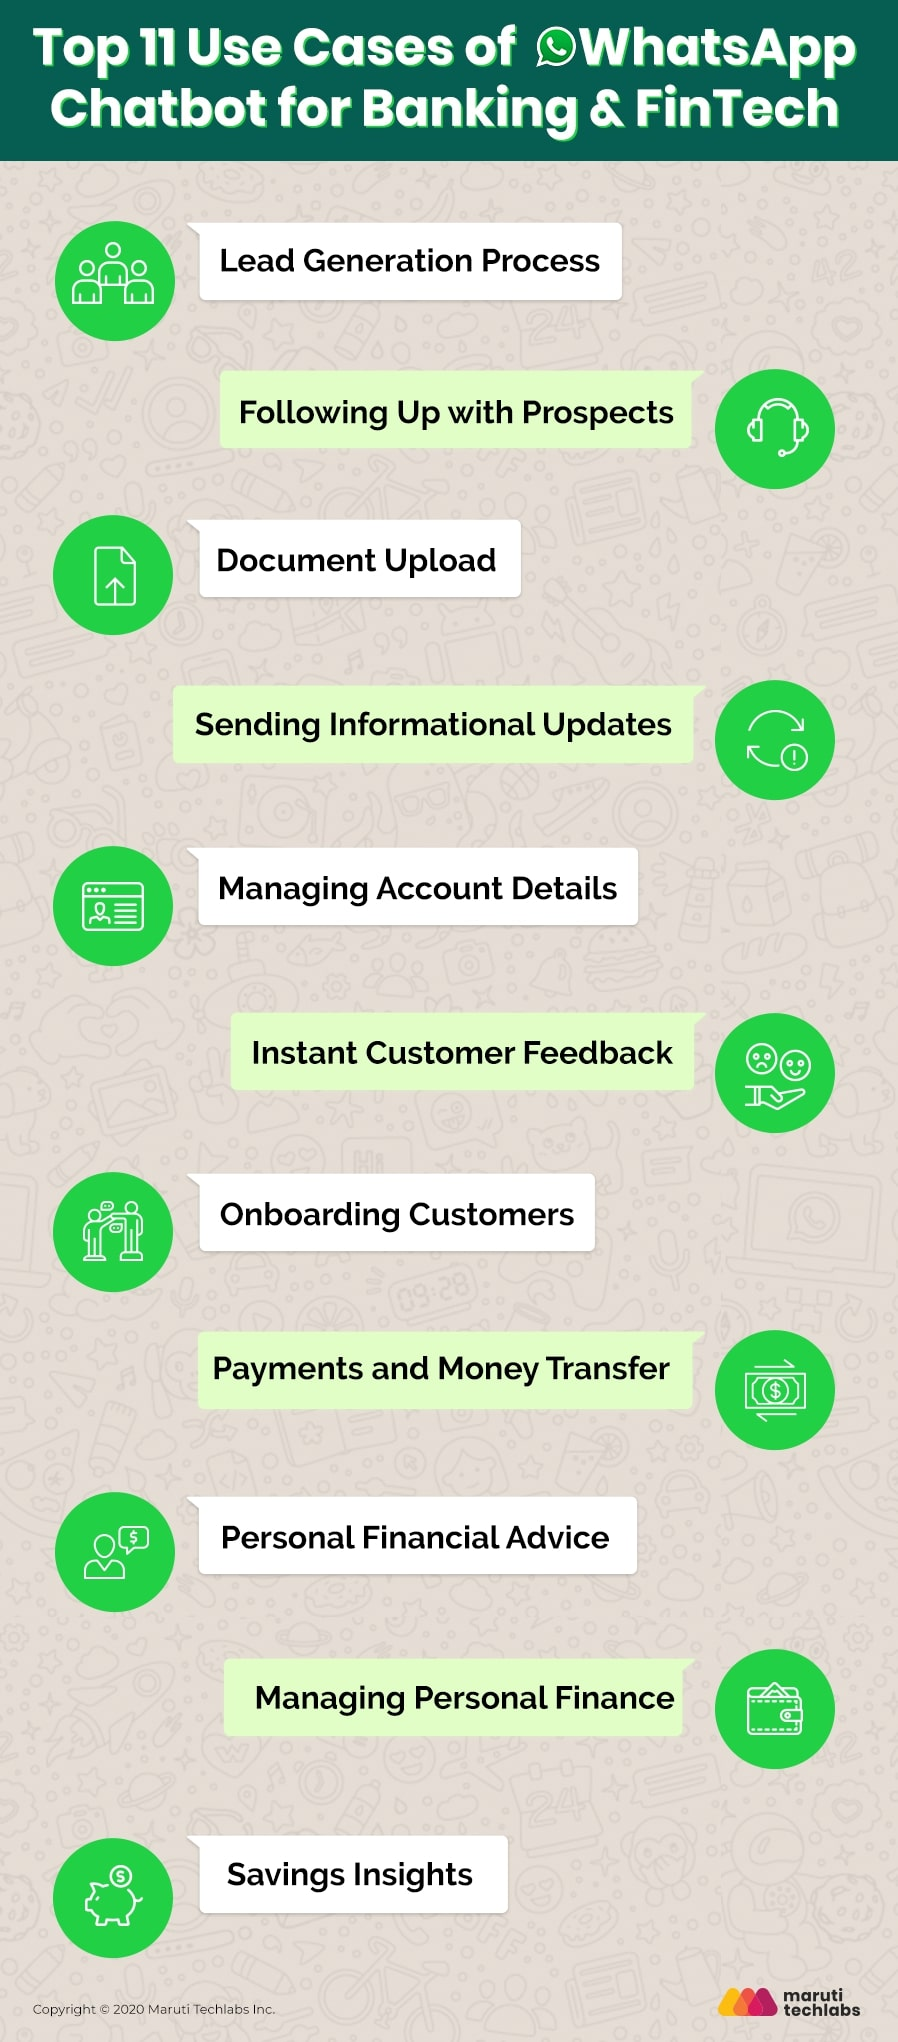 Use Cases For WhatsApp Banking & Fintech Chatbot